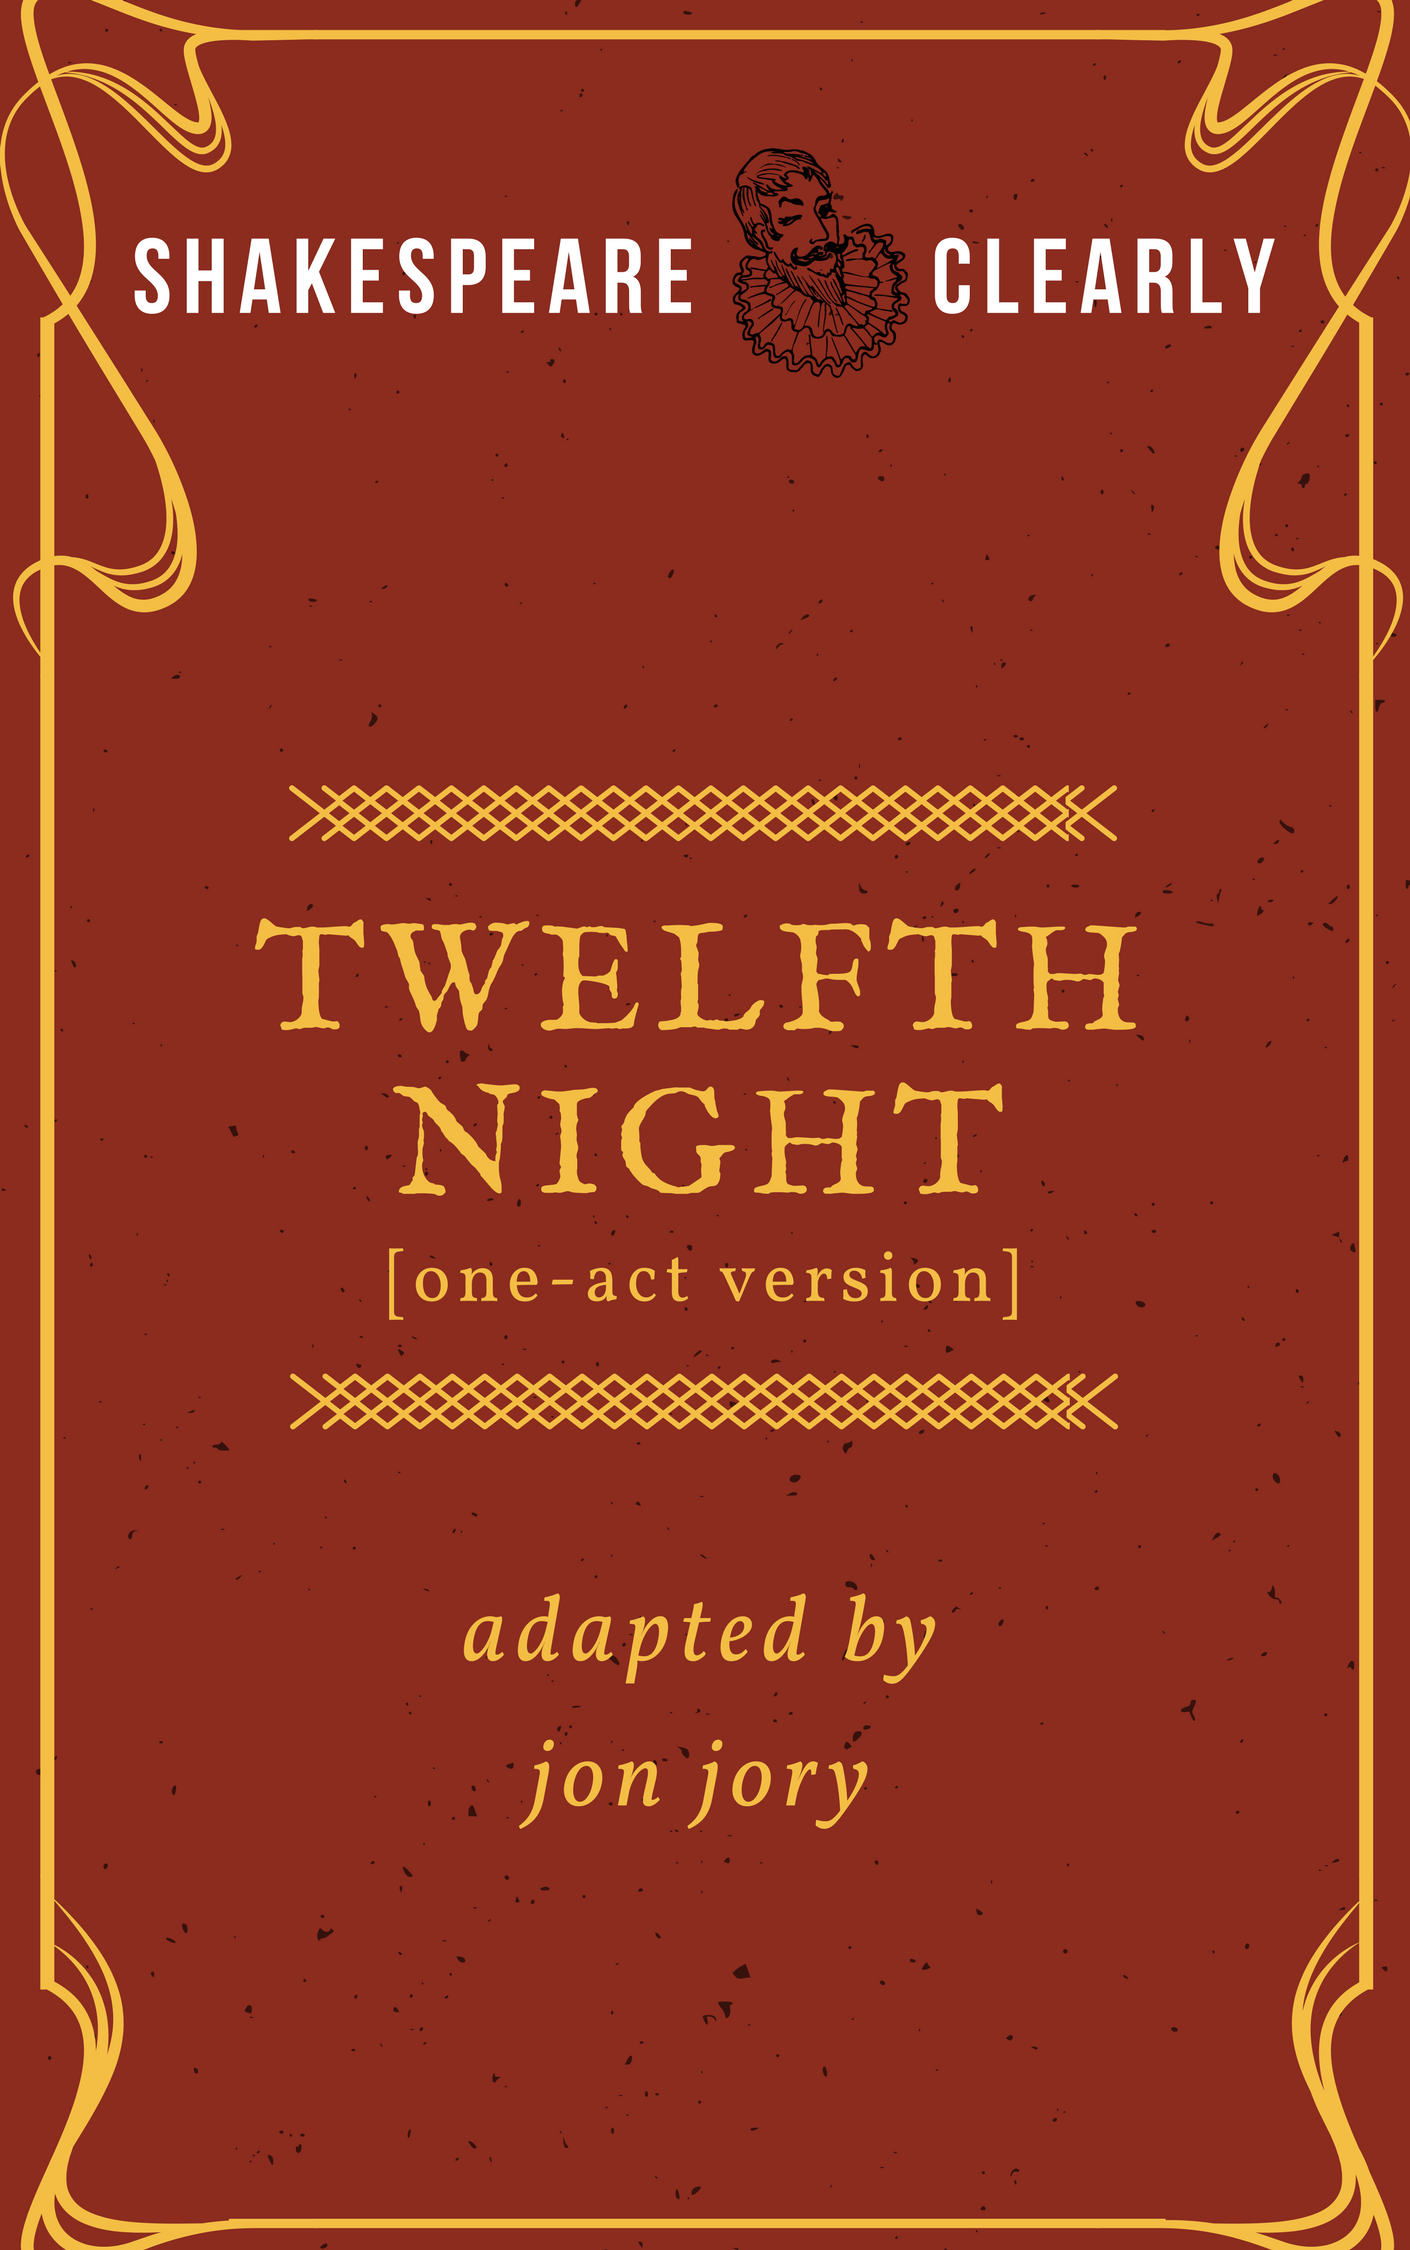 Twelfth Night one-act adapted by Jon Jory